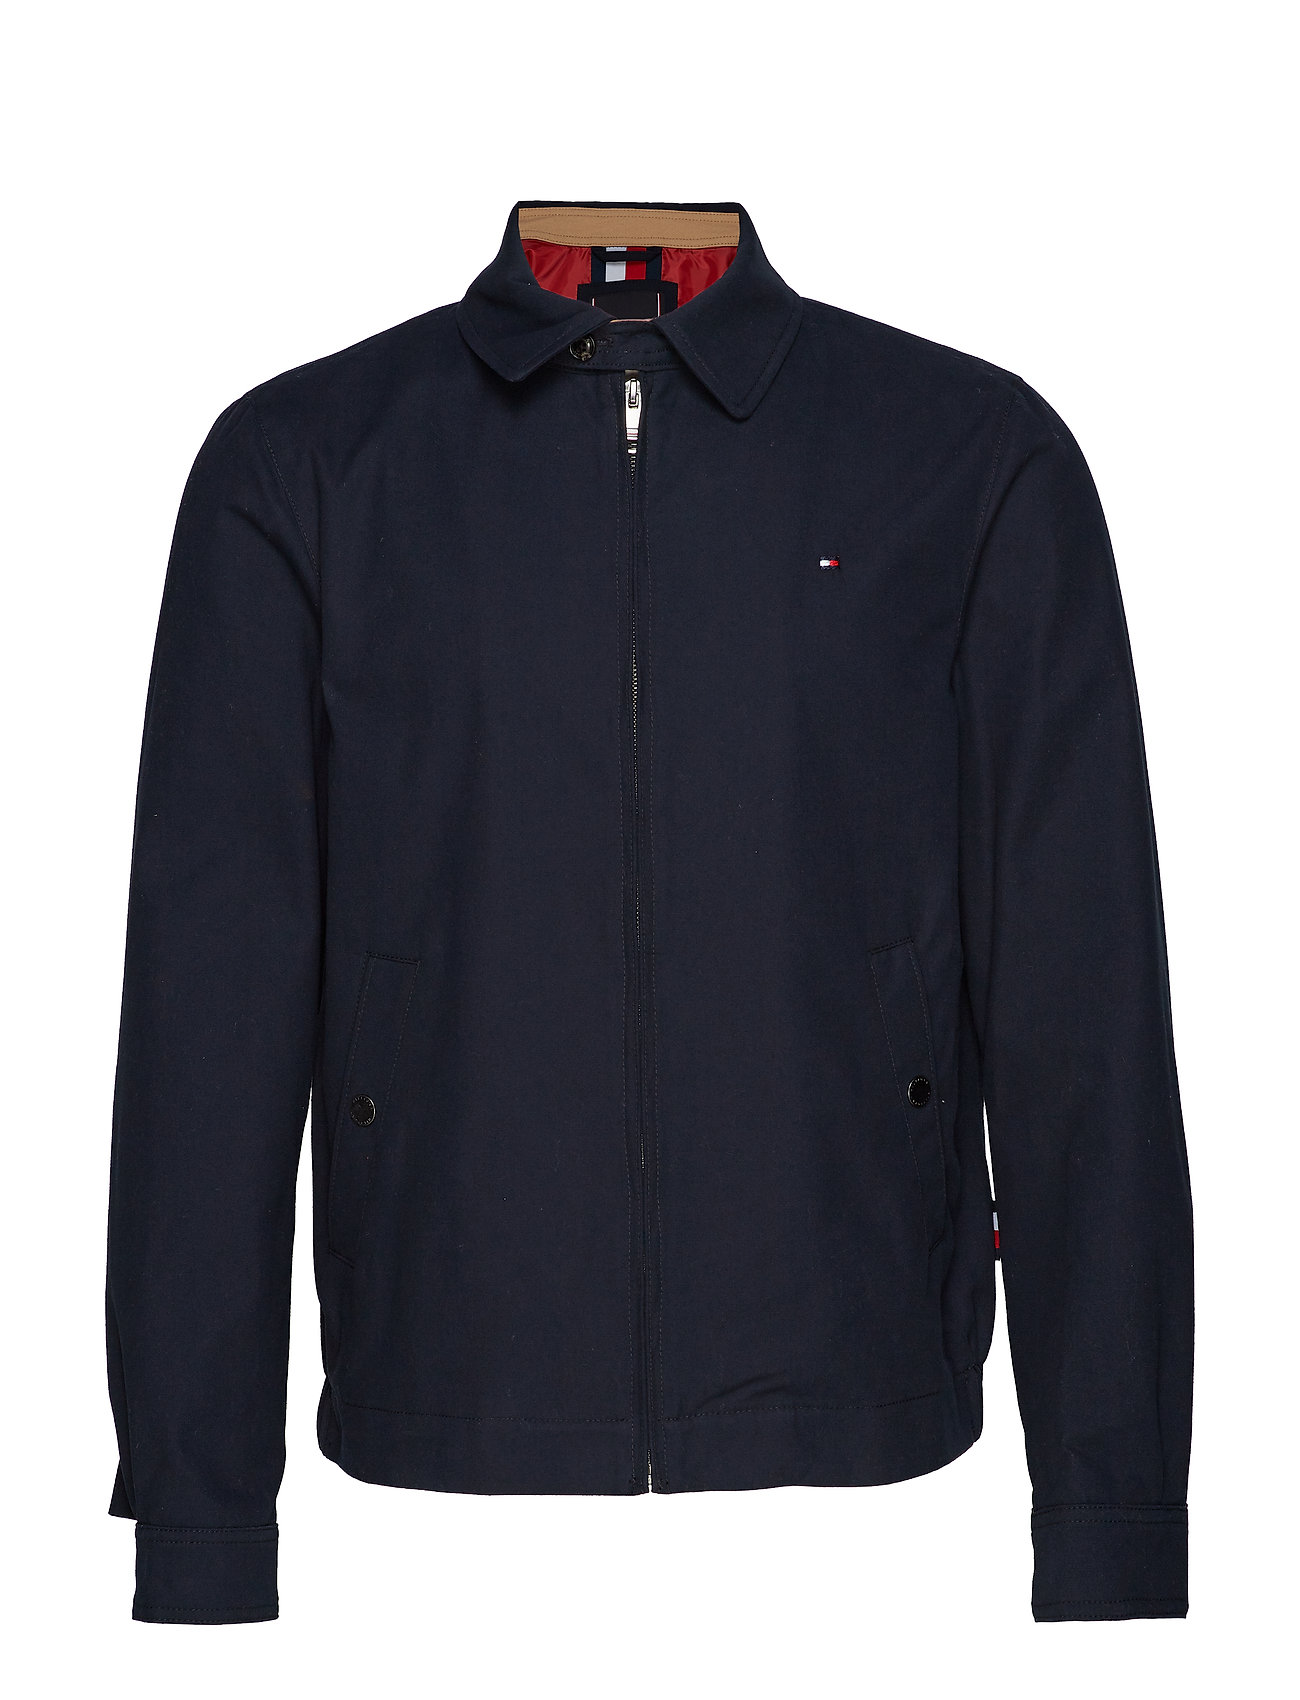 Tommy Hilfiger NEW RECYCLED IVY JAC - SKY CAPTAIN